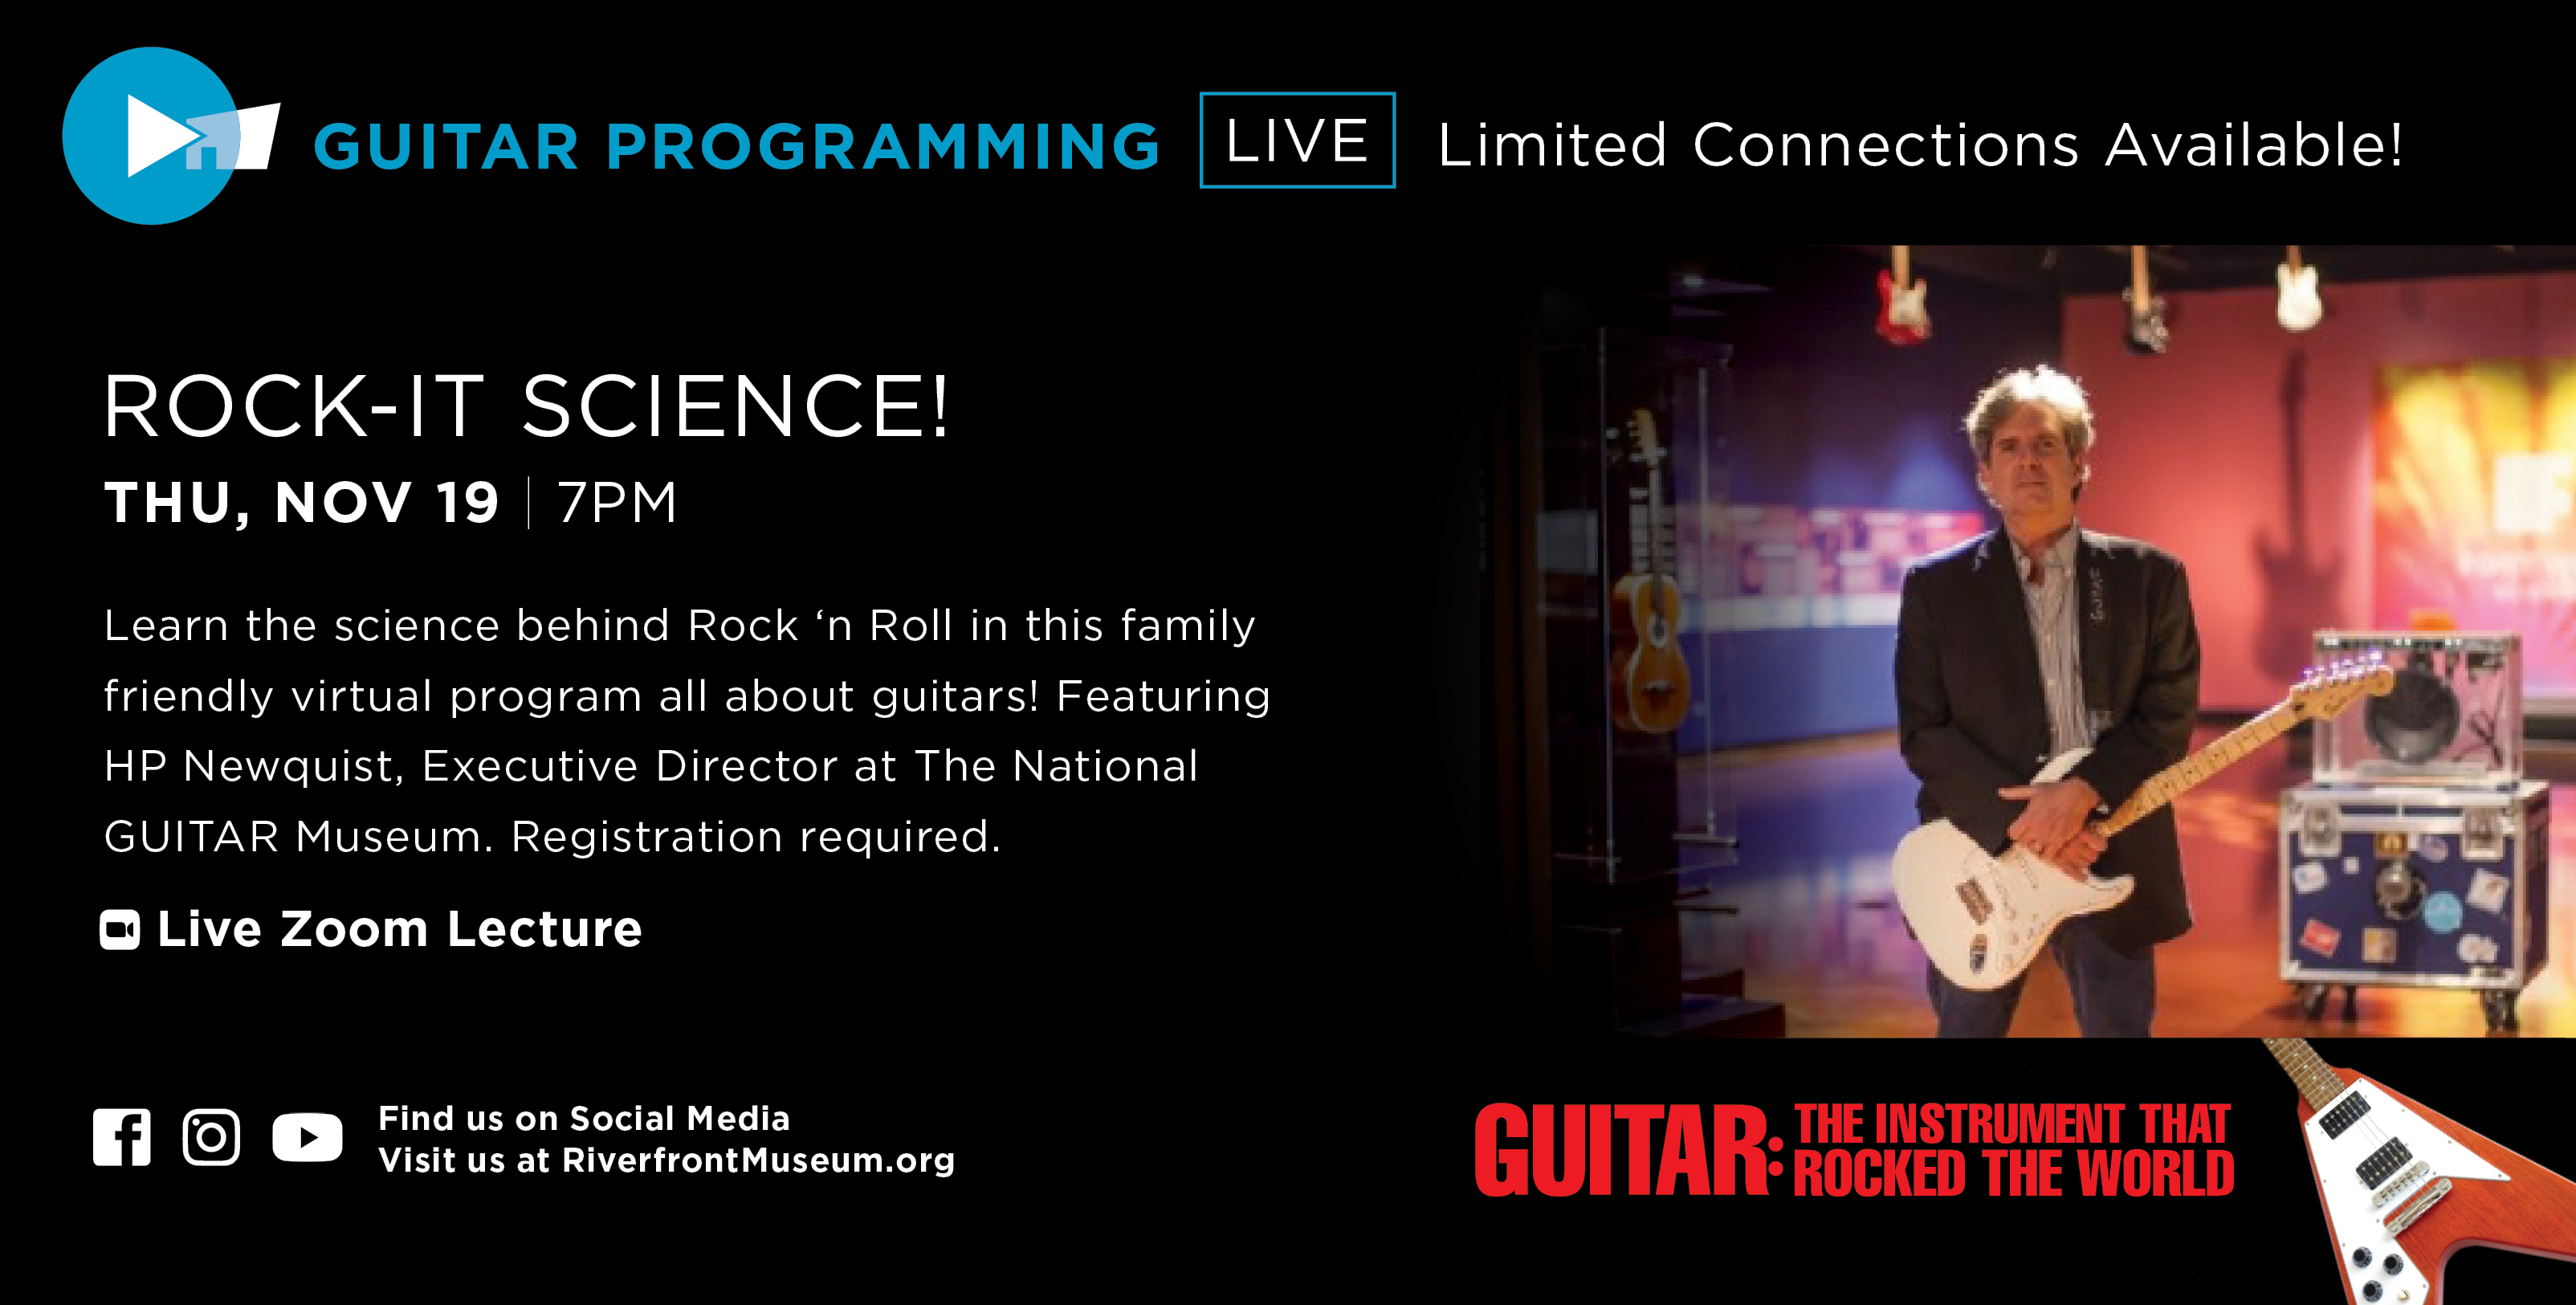 Exhibit Guitar Programs Rock It5